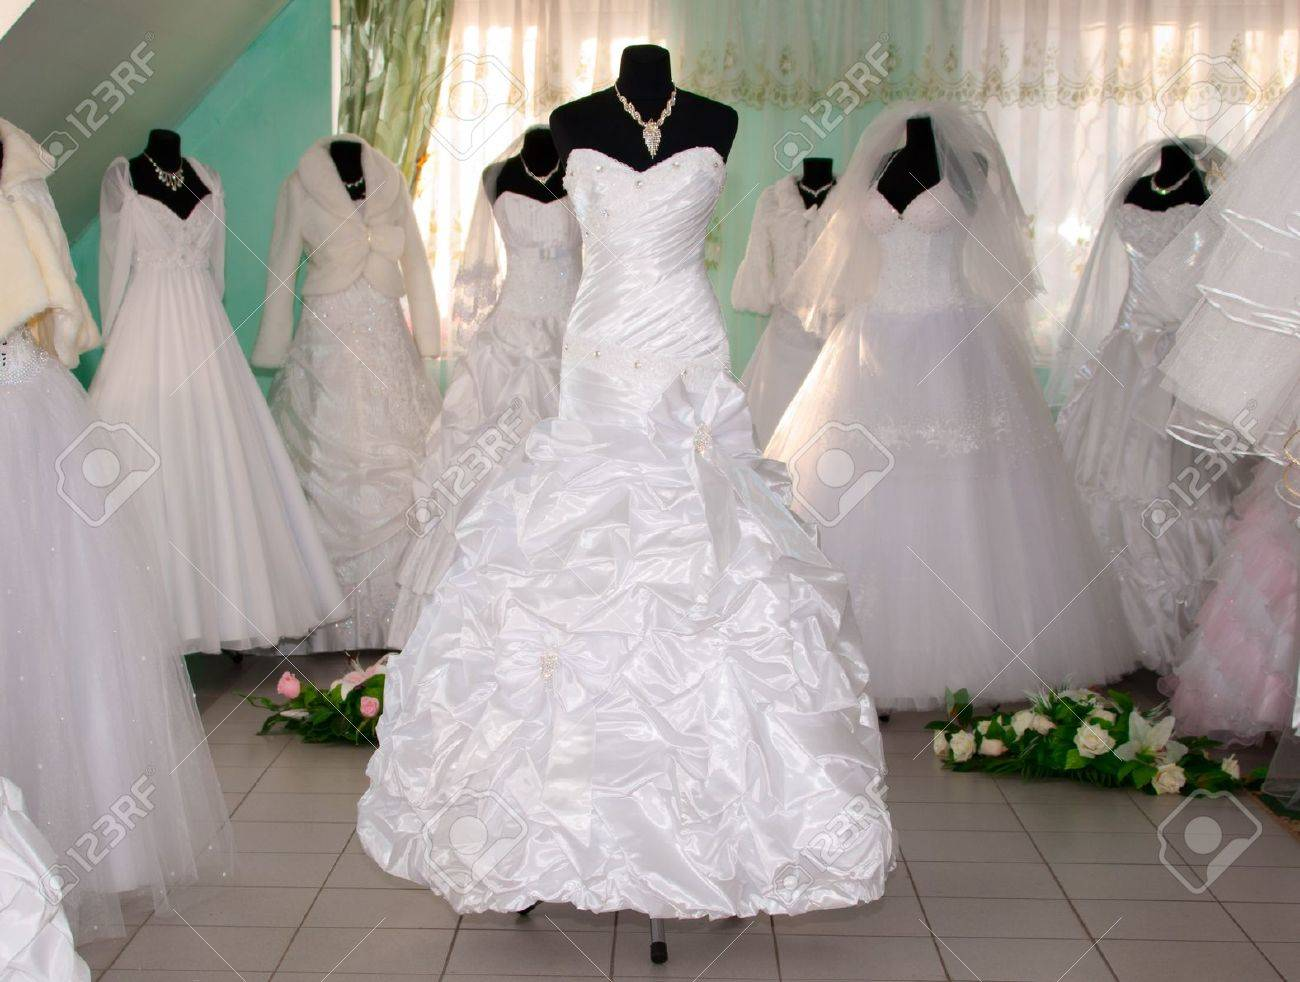 Some Wedding Dress's In A Dress Shop Stock Photo, Picture And ...